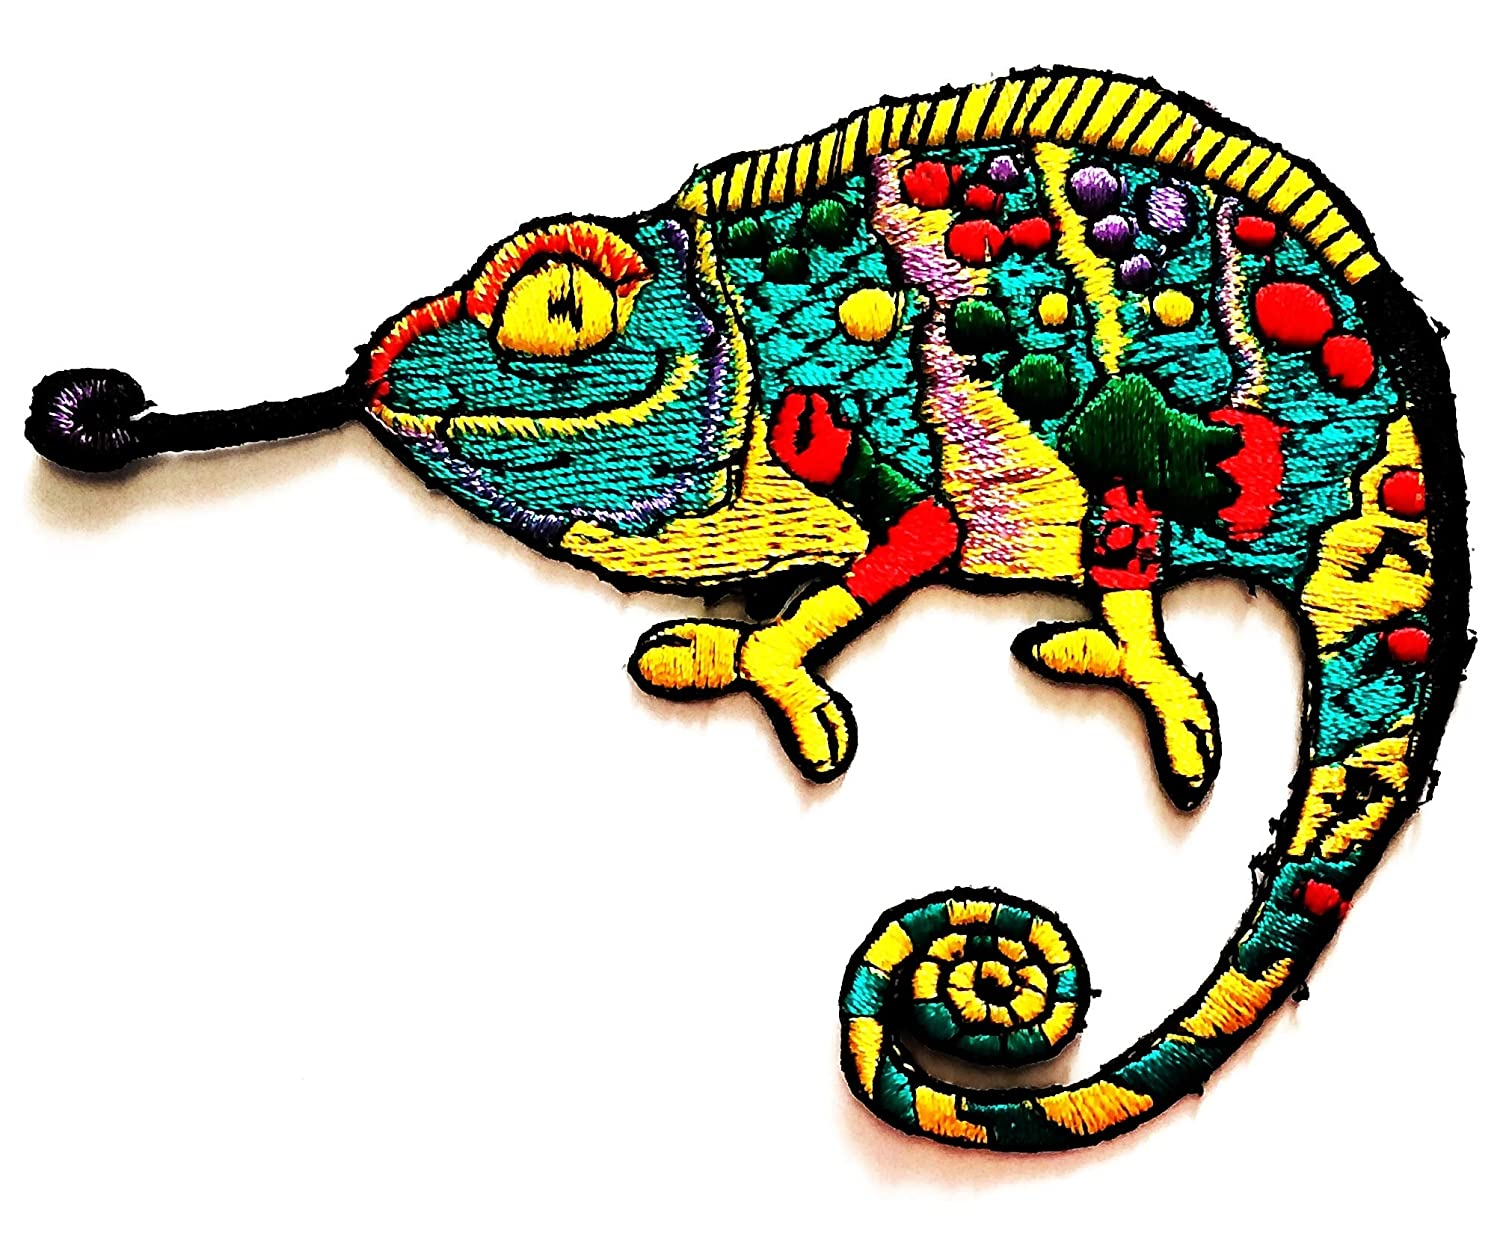 Nipitshop Patches Green Chameleon Lizard Animal Peace Flower Hipster Cartoon Kids Patch Embroidered Iron On Patch for Clothes Backpacks T-Shirt Jeans Skirt Vests Scarf Hat Bag